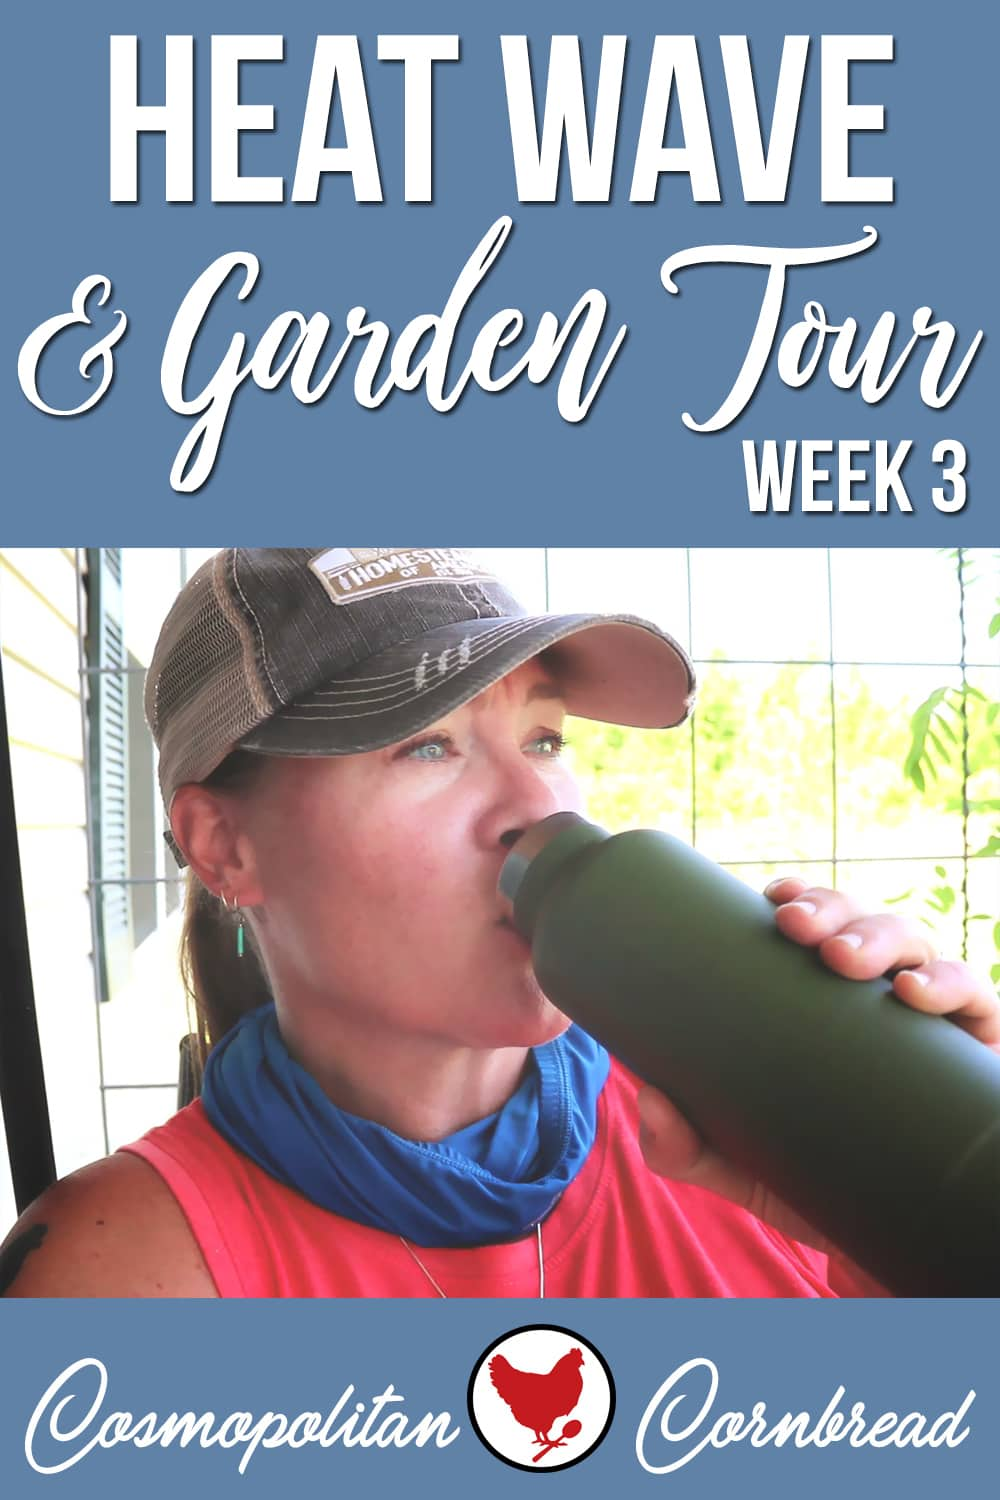 We are already in a major heat wave with temps in the 90s and heat indexes approaching 100! How I stay cool, and then a tour through the big garden.